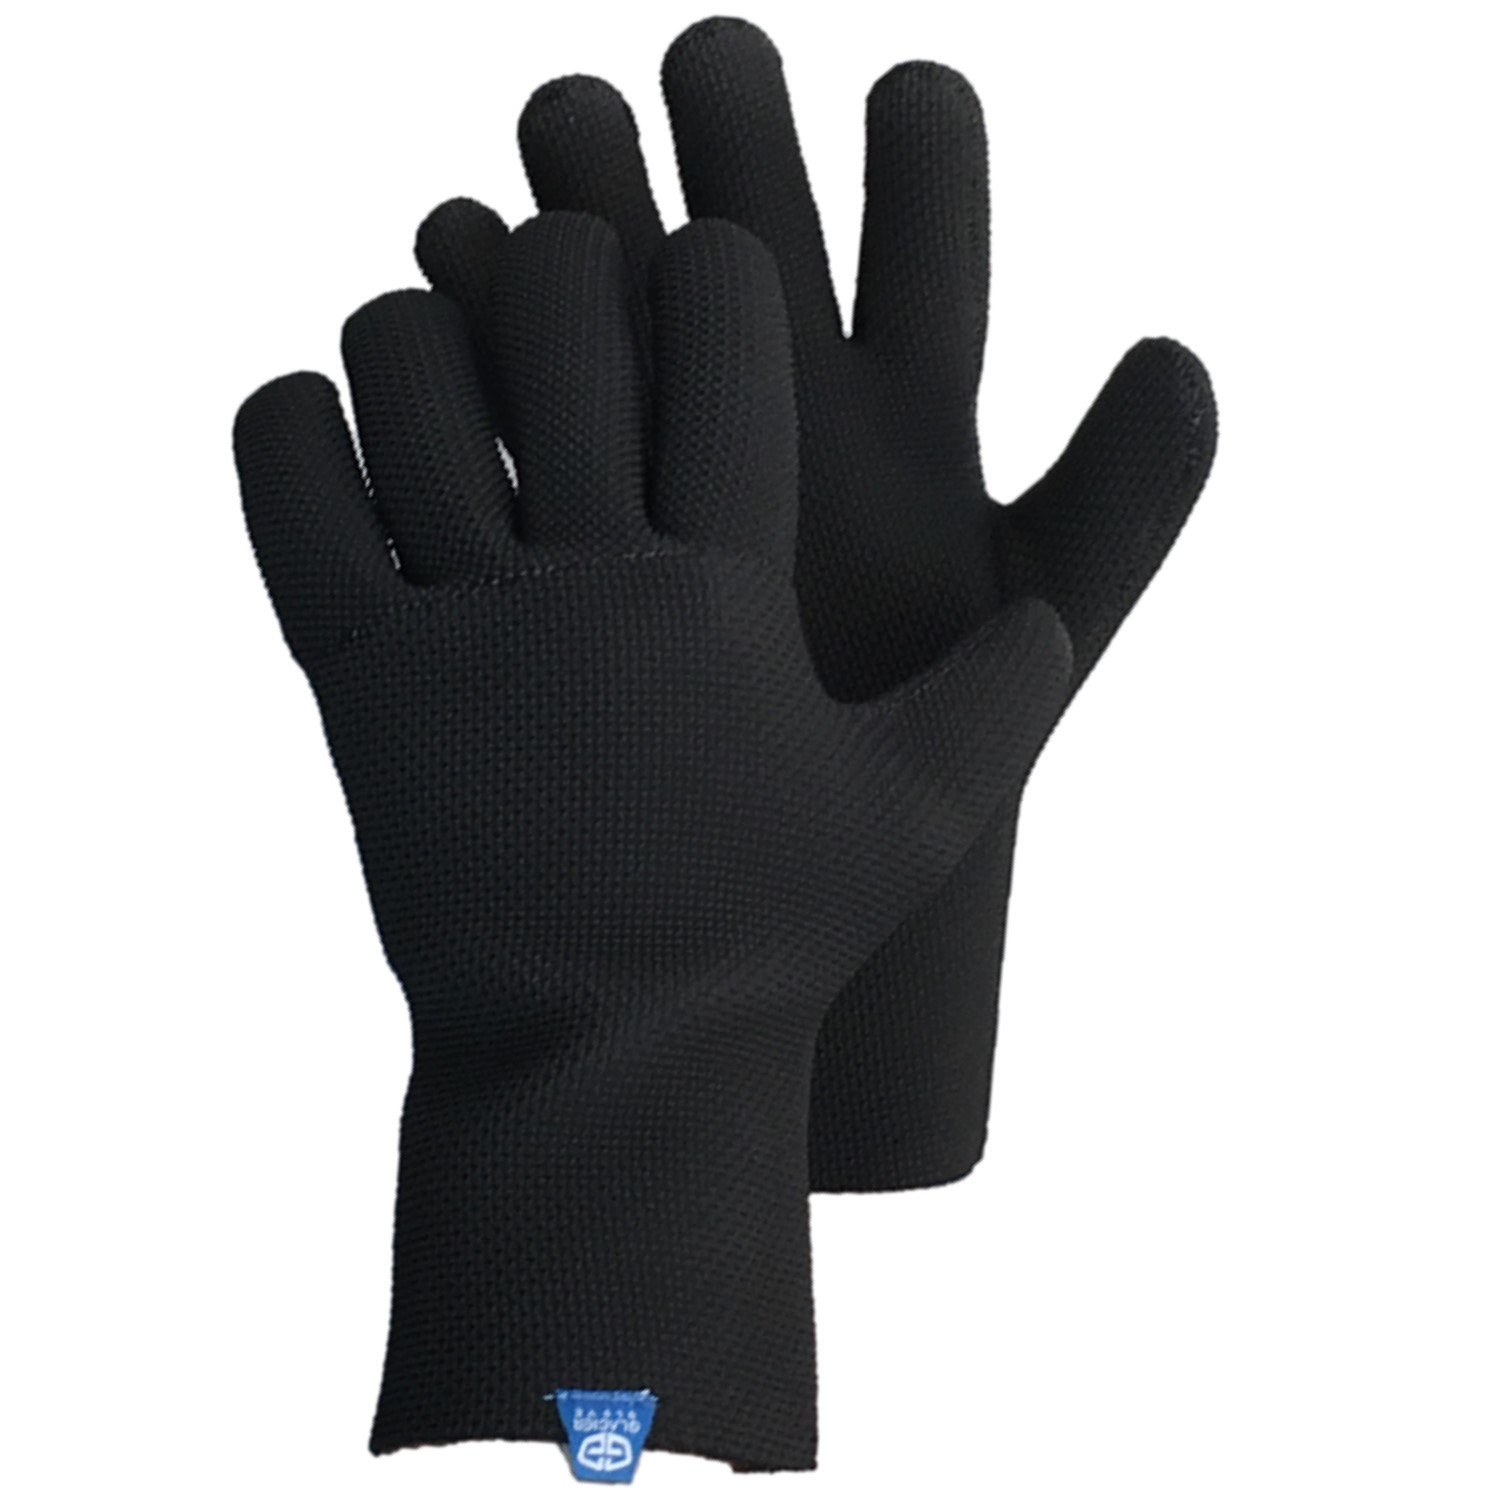 Motorcycle leather gloves amazon - Amazon Com Glacier Glove Ice Bay Fishing Glove Glacier Glove Ice Bay Fishing Glove Black X Large Sports Outdoors